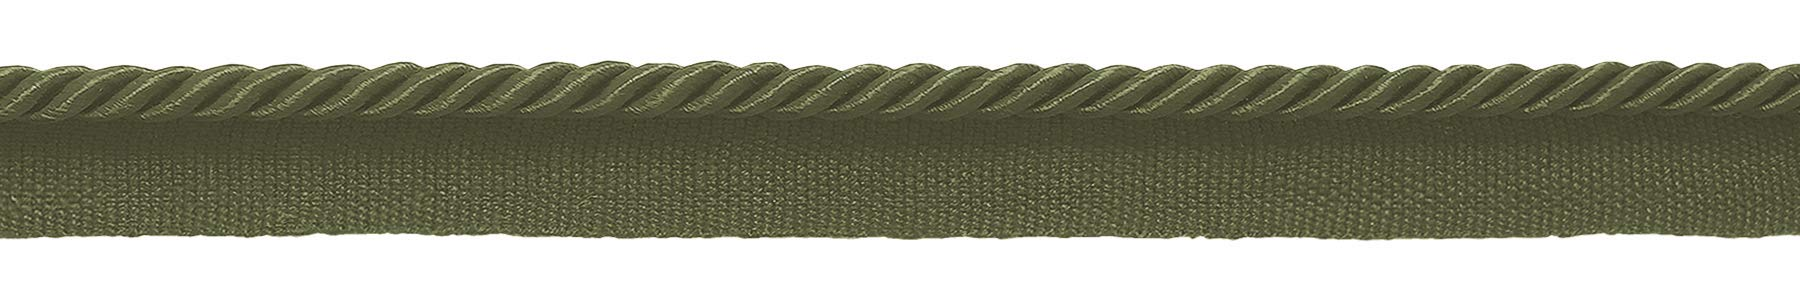 DÉCOPRO 24 Yard Package|Small 3/16 inch Basic Trim Decorative Rope|Style# 0316S (21976)|Color: Green Mist - L47|72 Ft / 21.9 Meters by DÉCOPRO